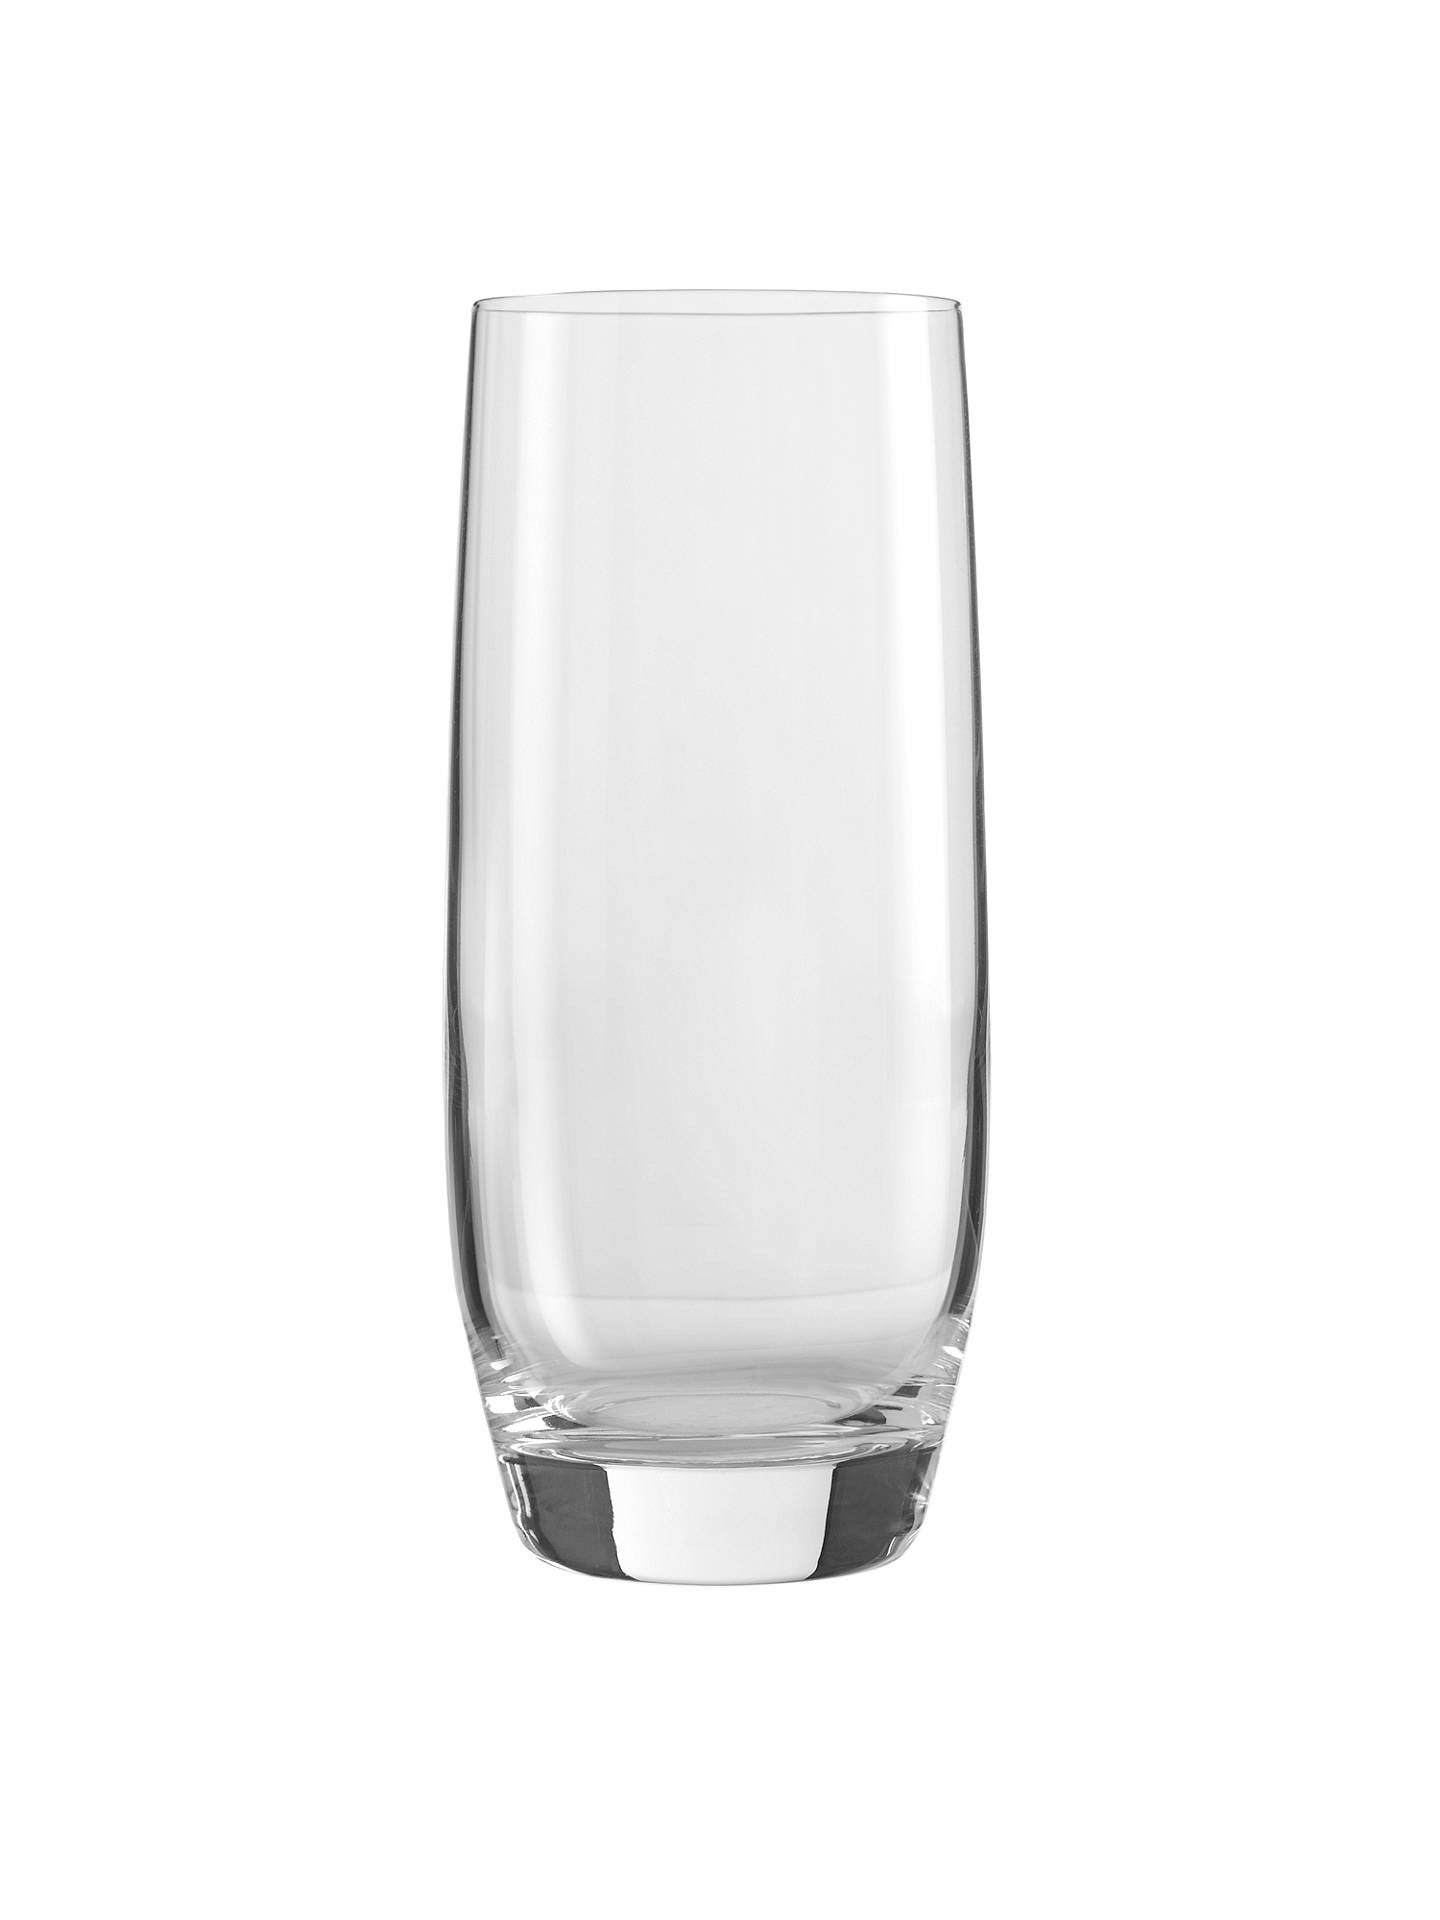 tall thin clear glass vases of john lewis partners connoisseur highballs set of 4 clear 450ml with buyjohn lewis partners connoisseur highballs set of 4 clear 450ml online at